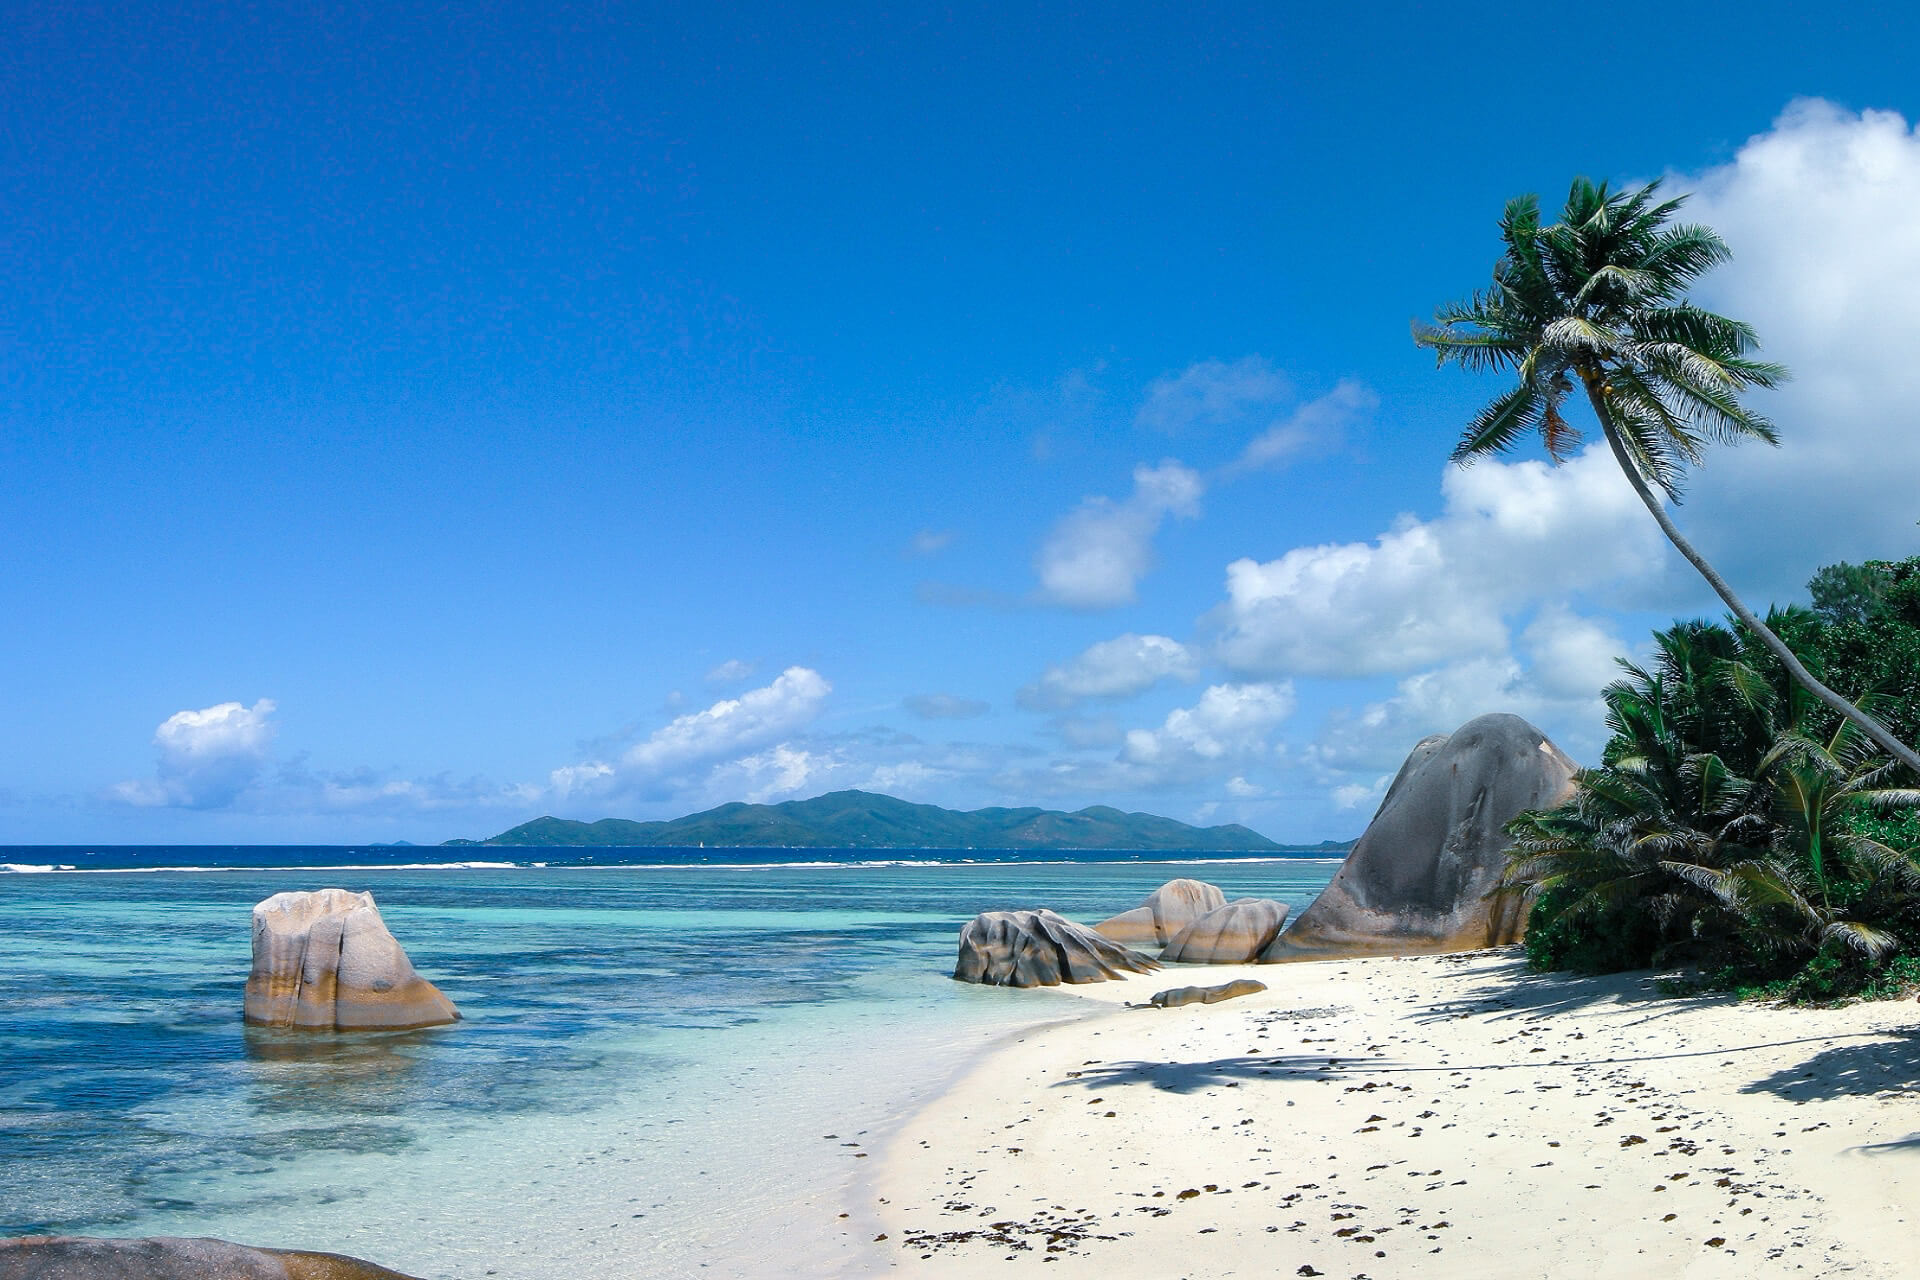 Jewel Of Seychelles - The Most Photographed Beach In The World